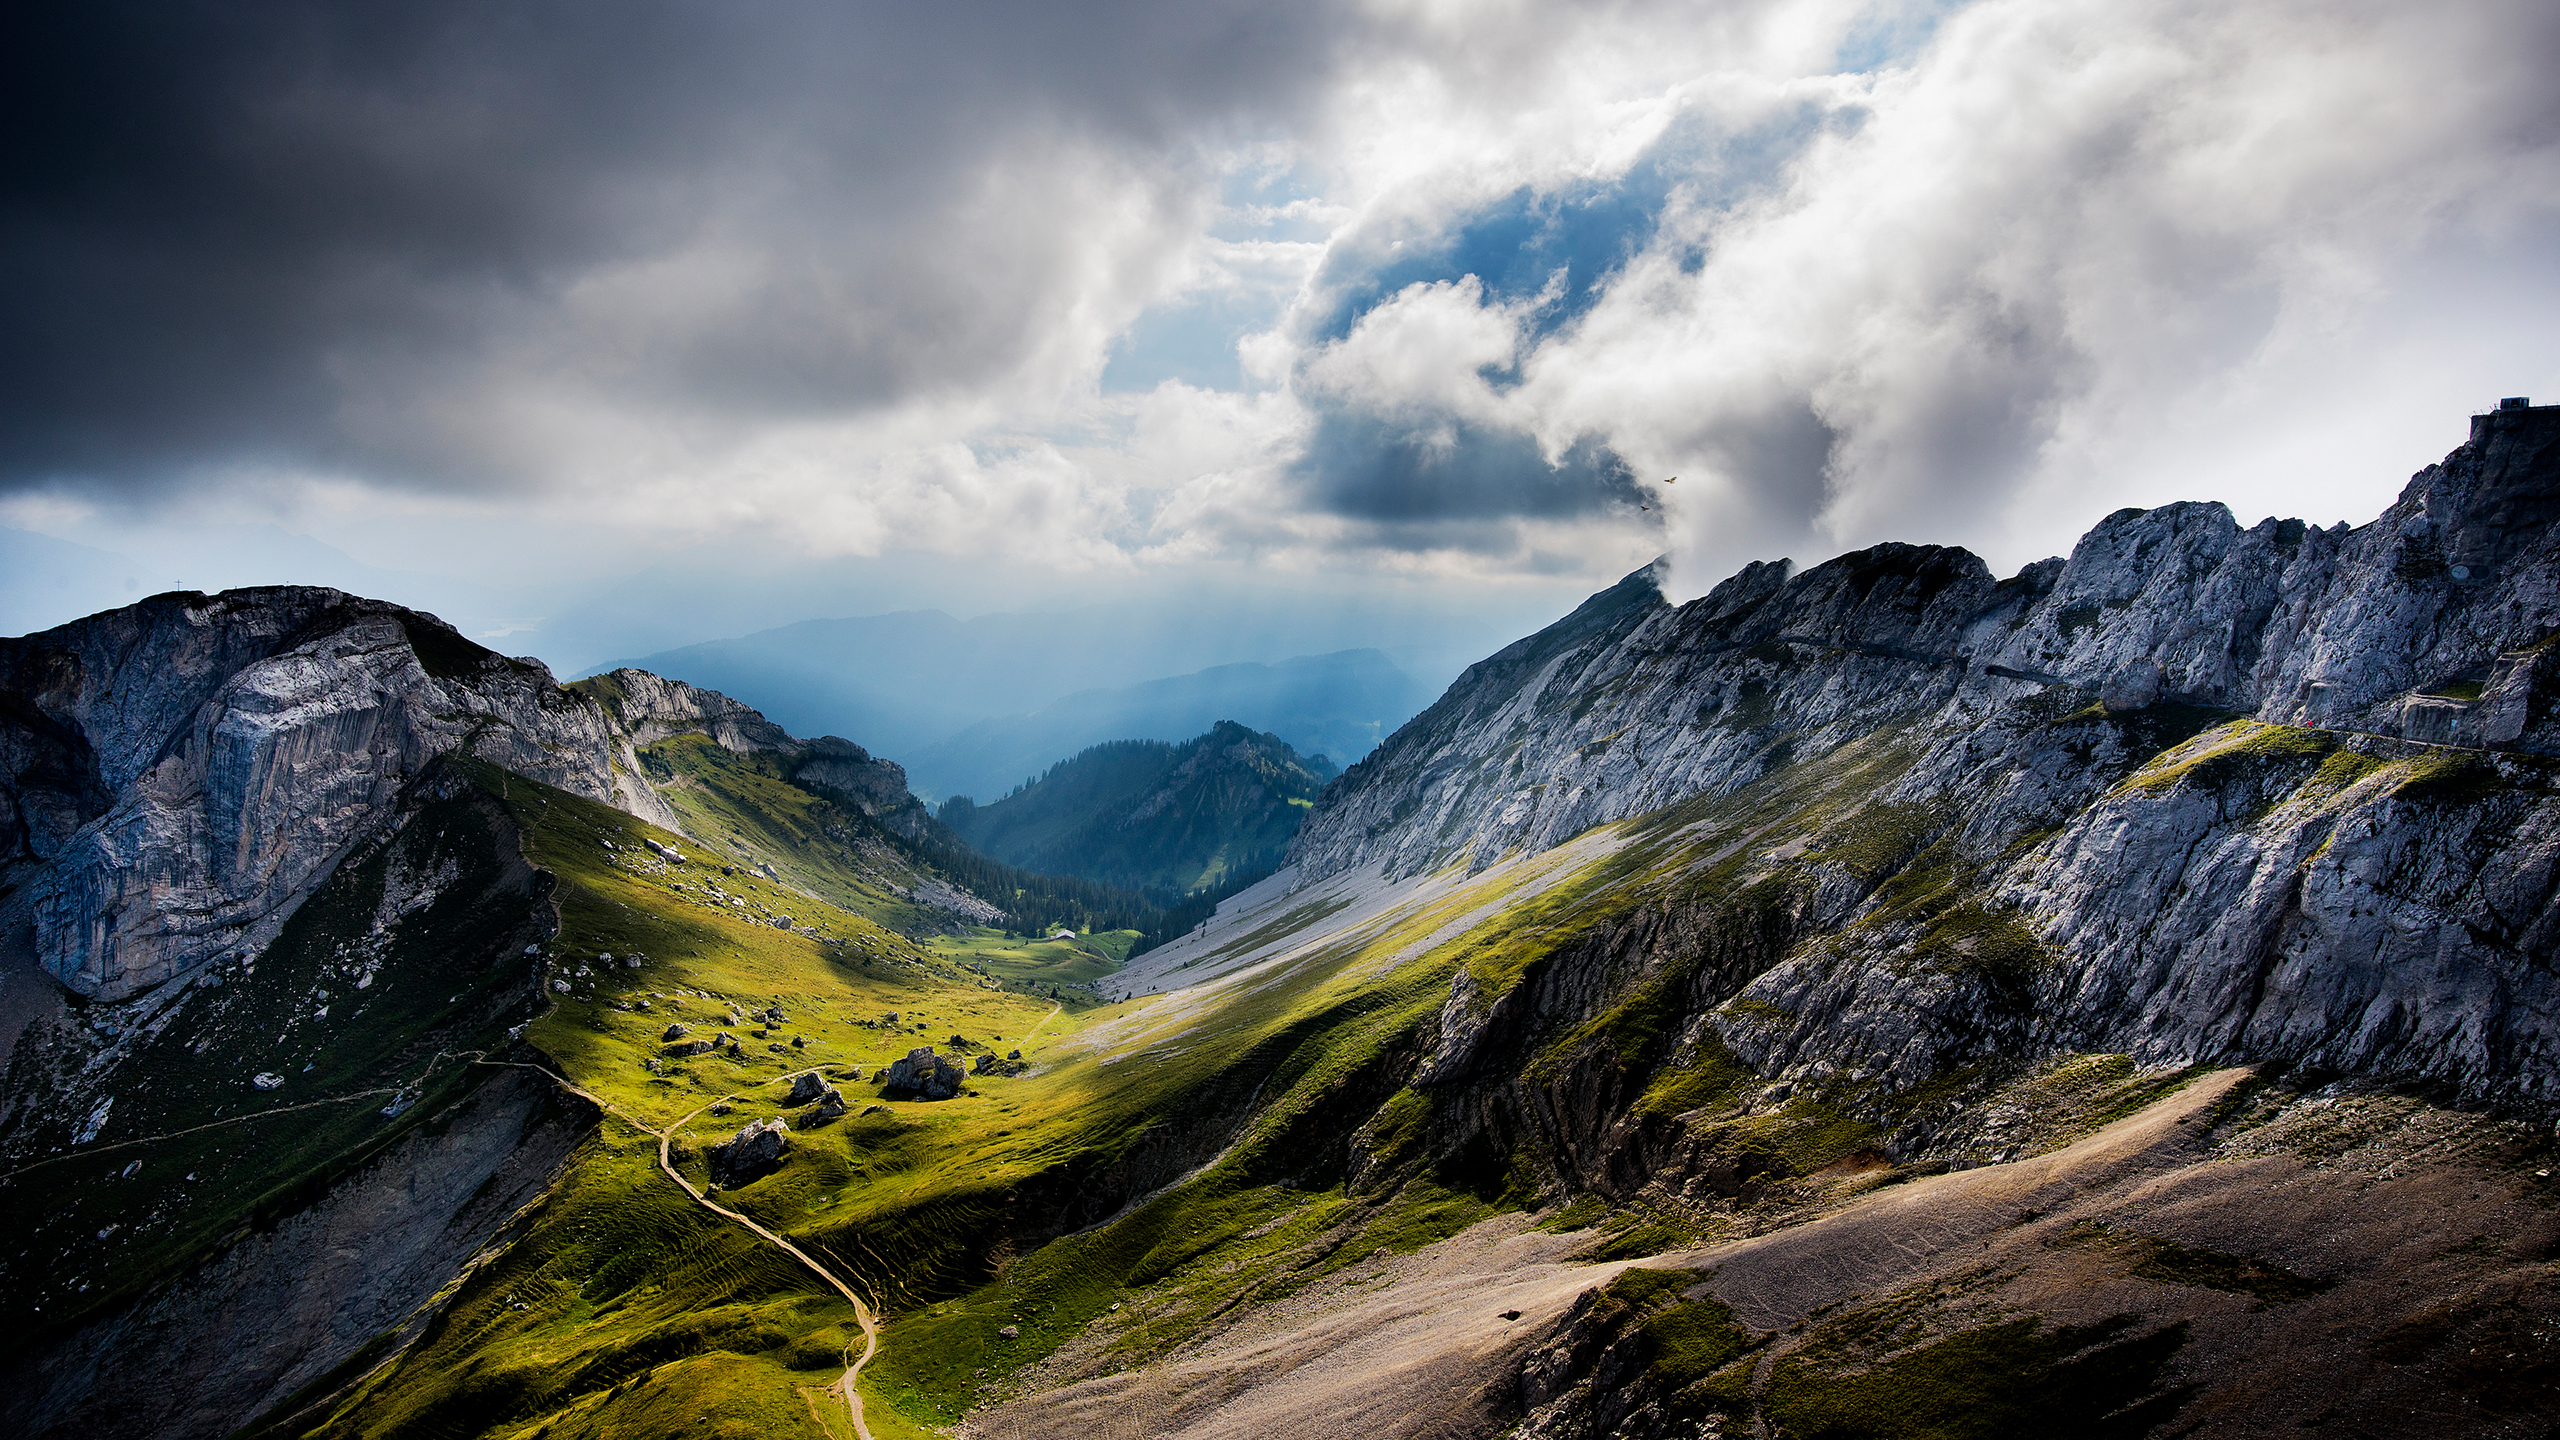 mindblowing_switzerland_wallpaper_2560x1440